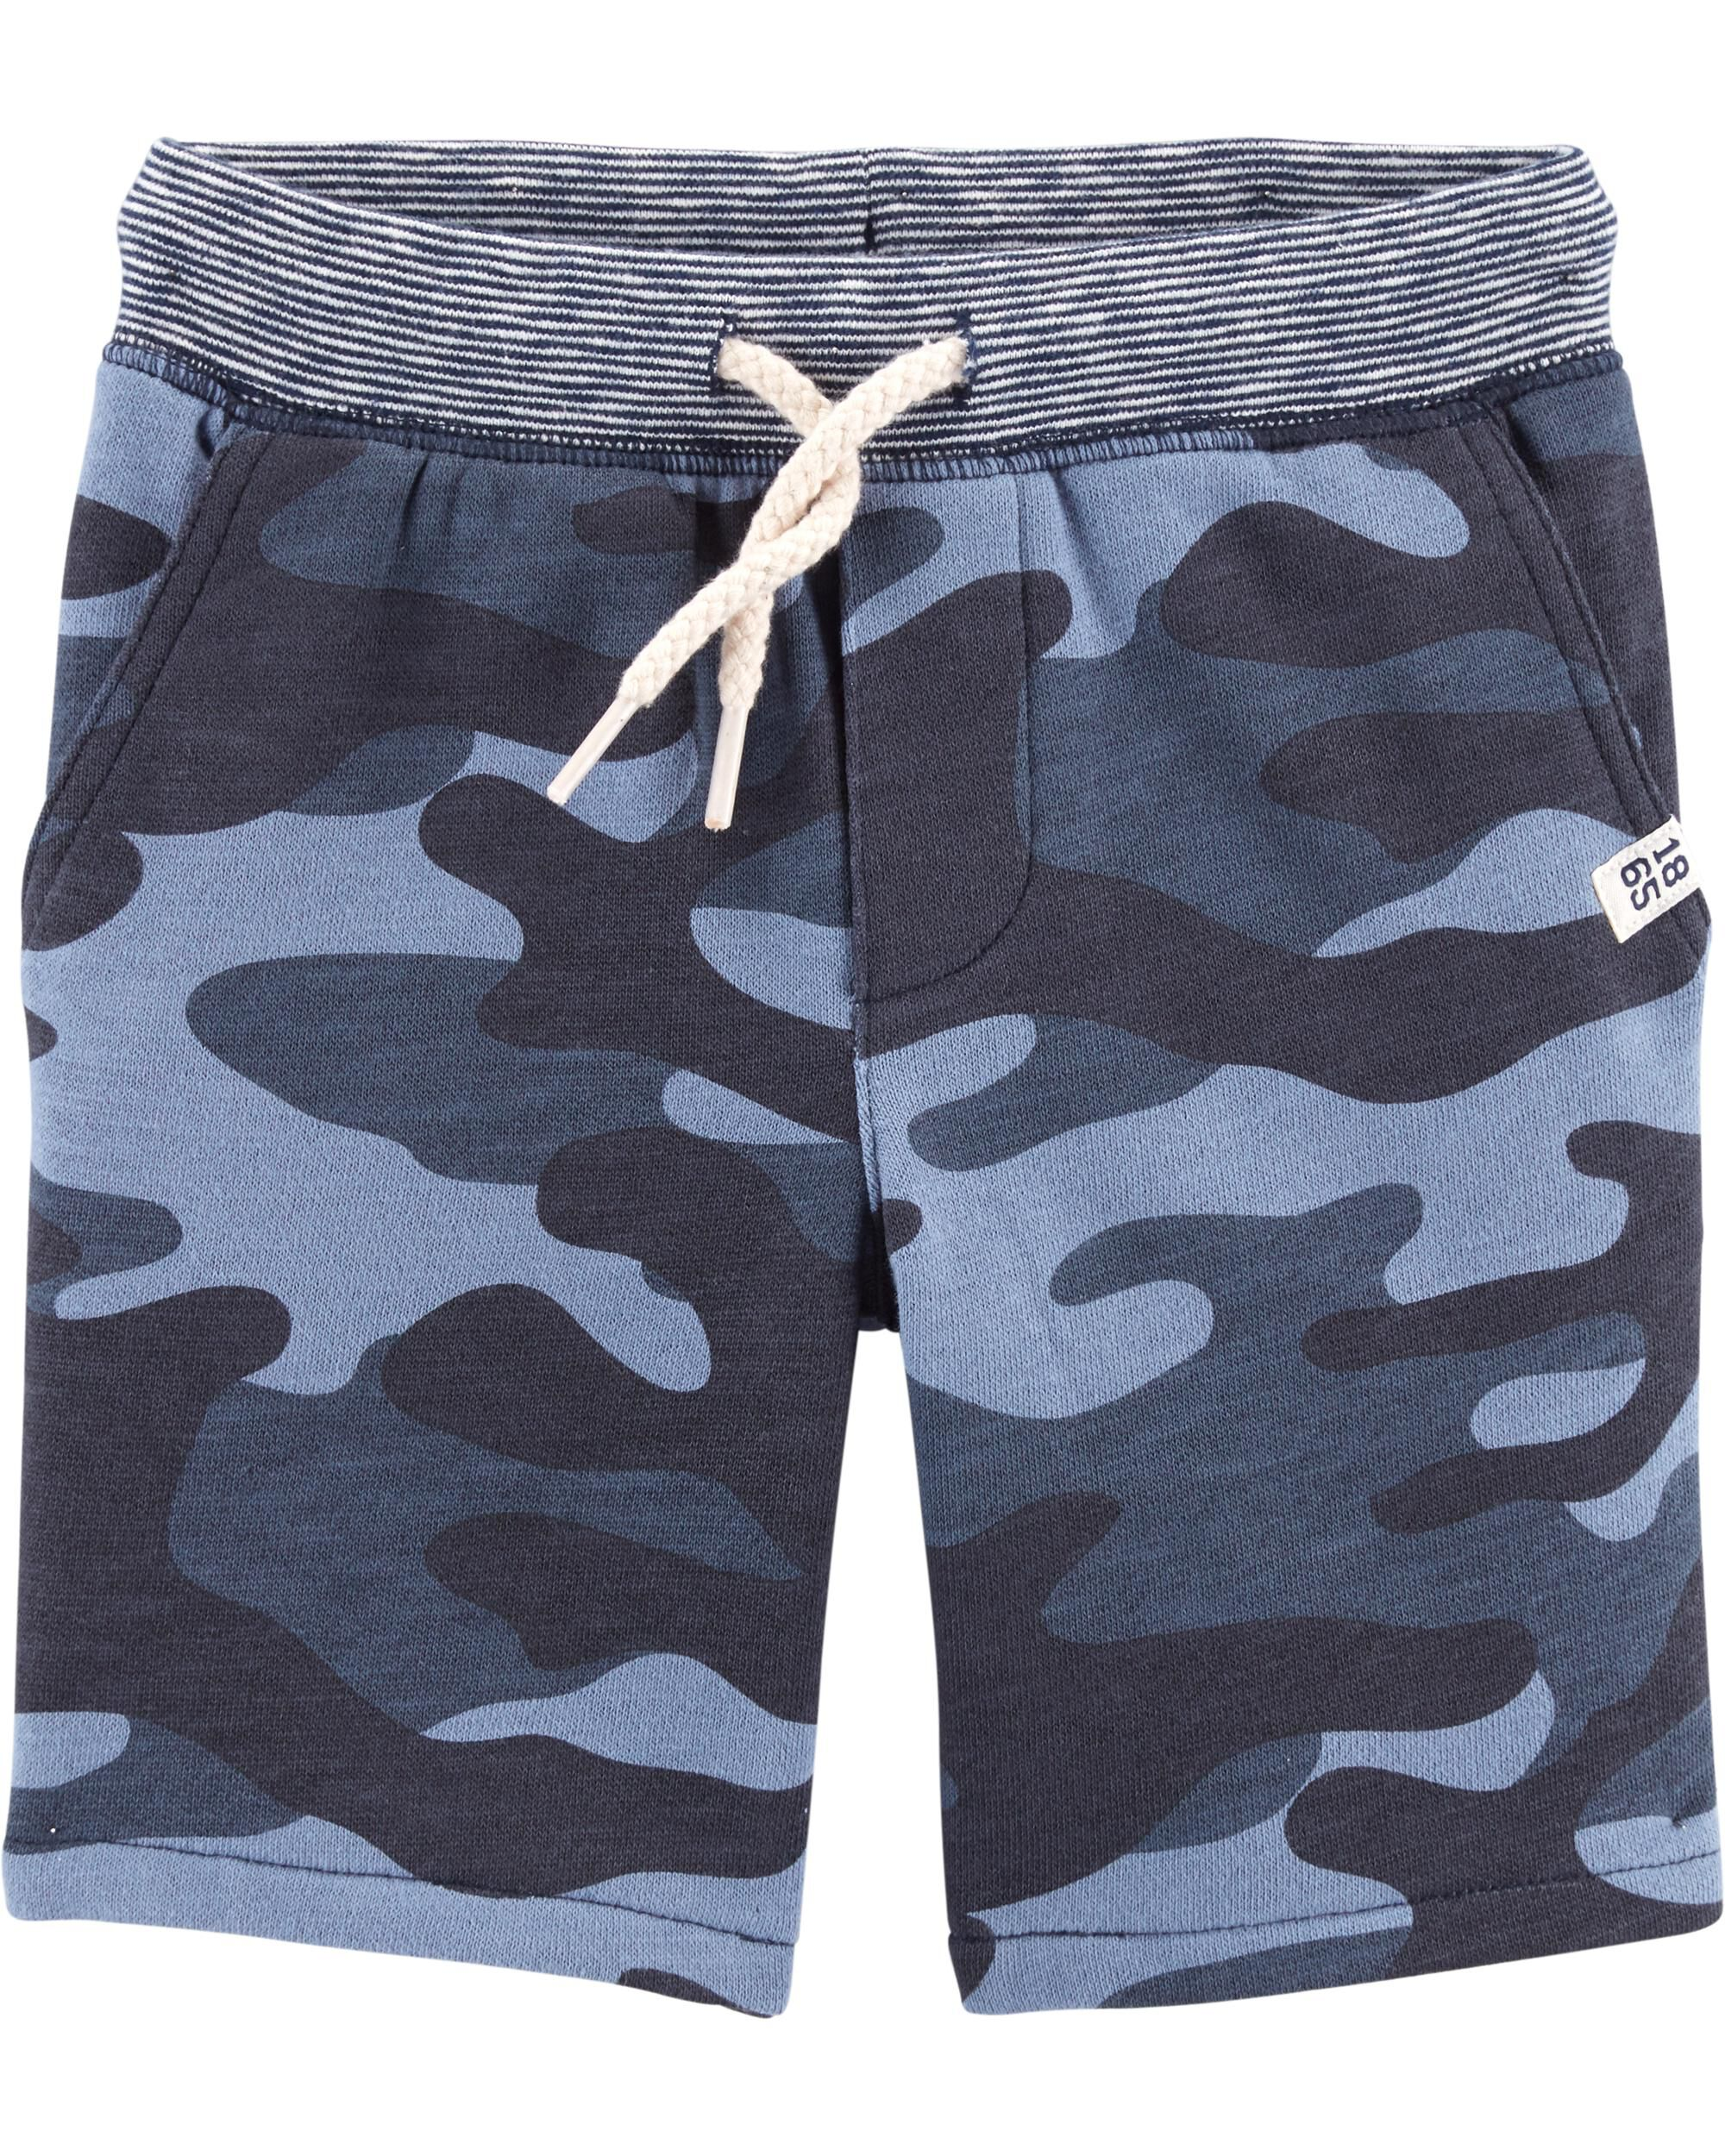 *Clearance*  Easy Pull-On French Terry Shorts